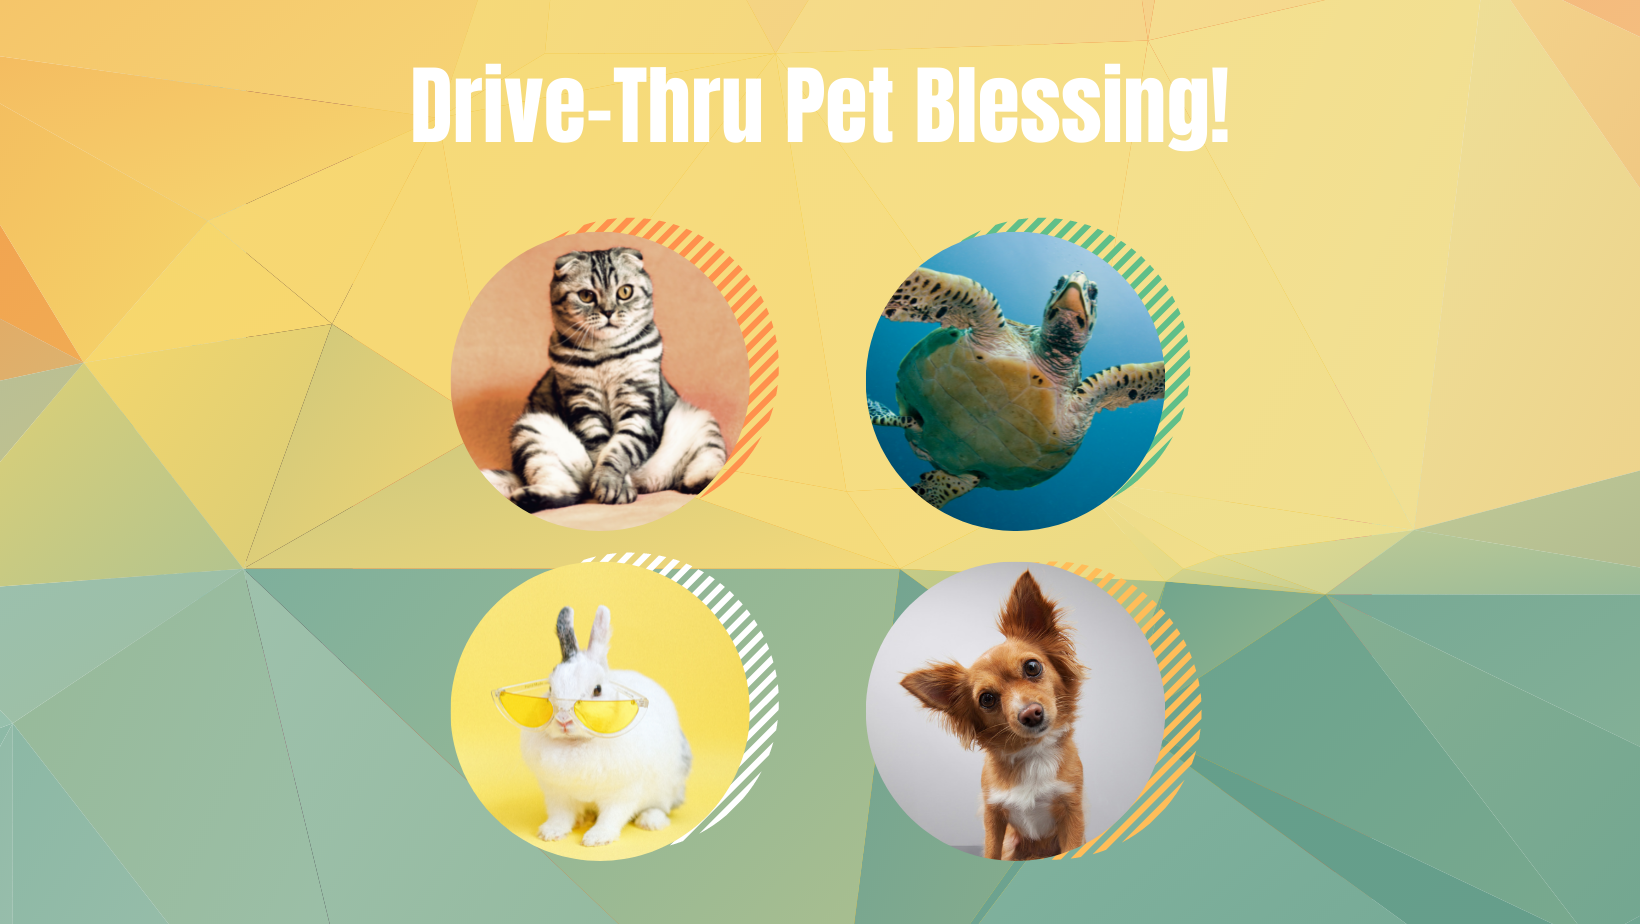 Copy of Drive Thru Pet Blessing image